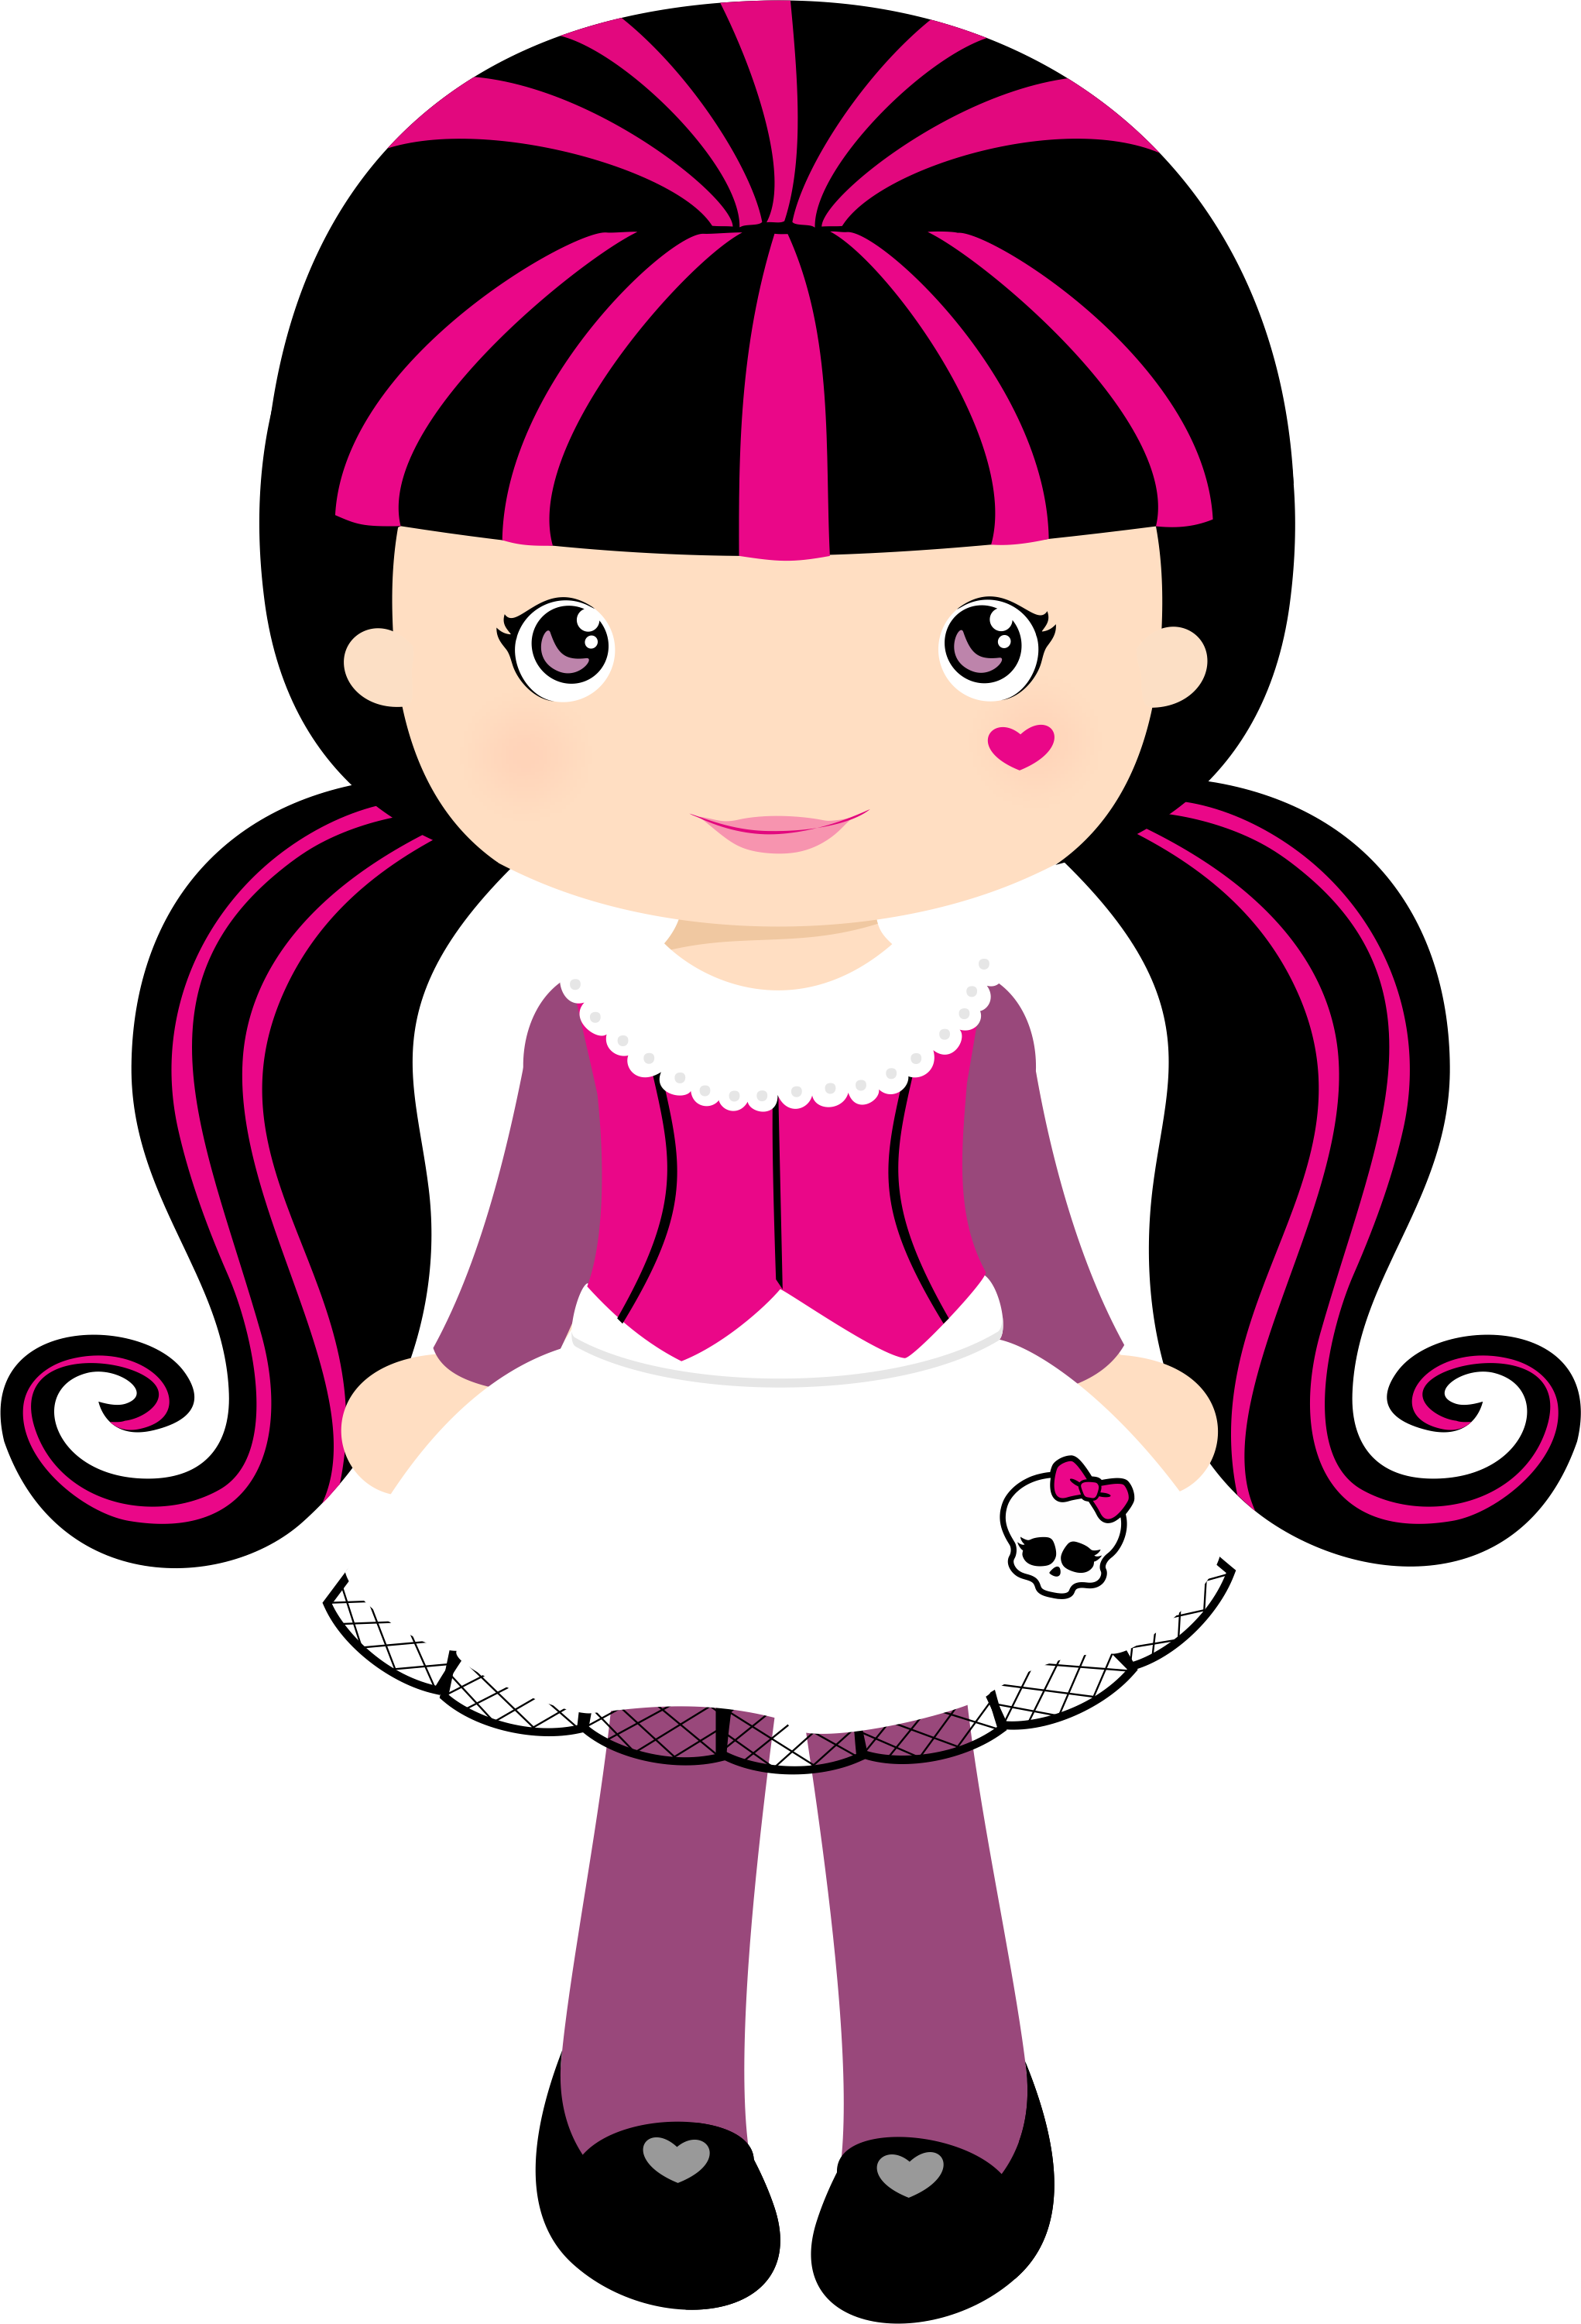 Grafos girlscostumes girlcostume png. Television clipart printable